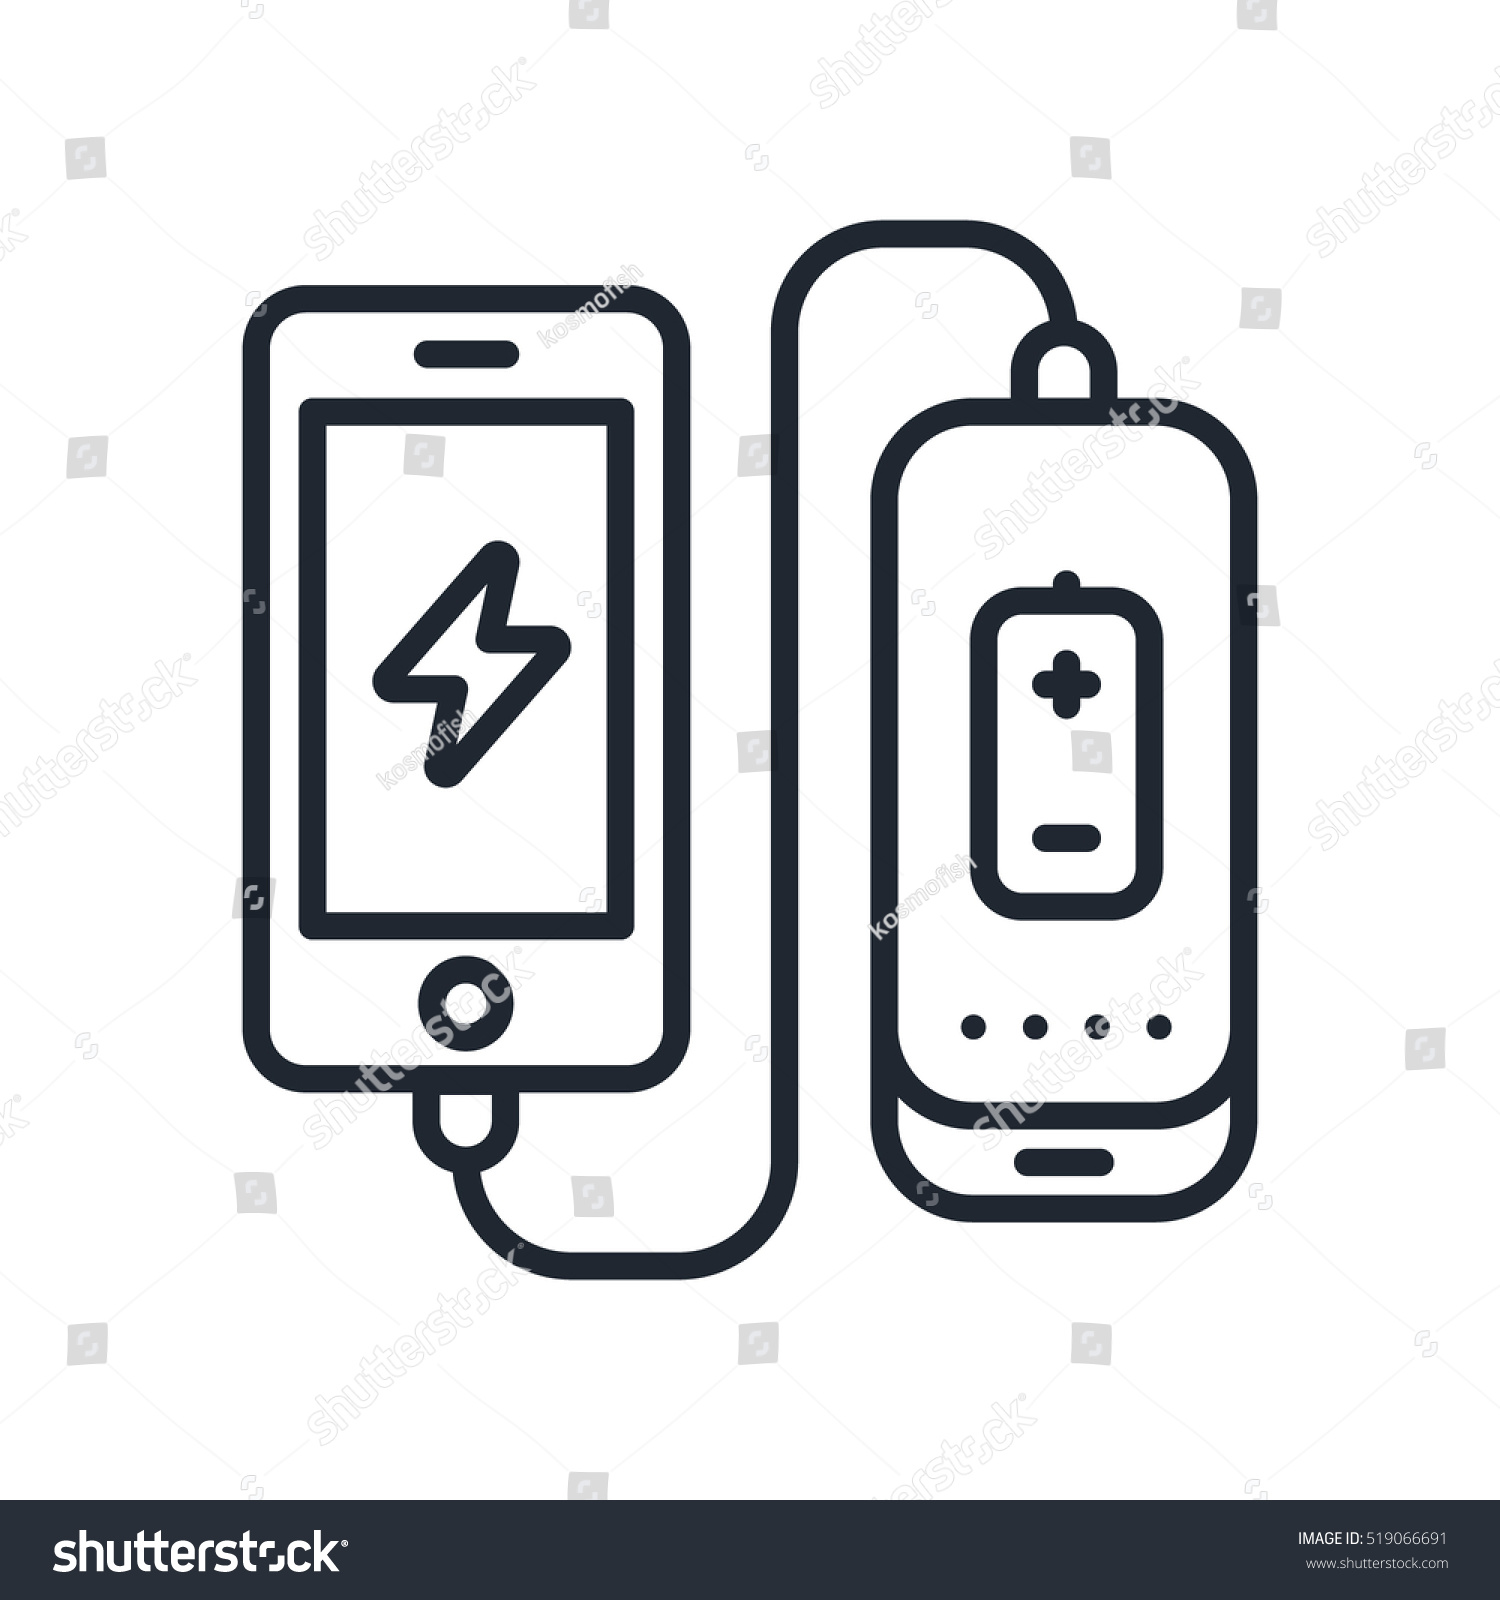 Power Bank Battery Phone Charger Minimalistic Stock Vector 519066691 ...